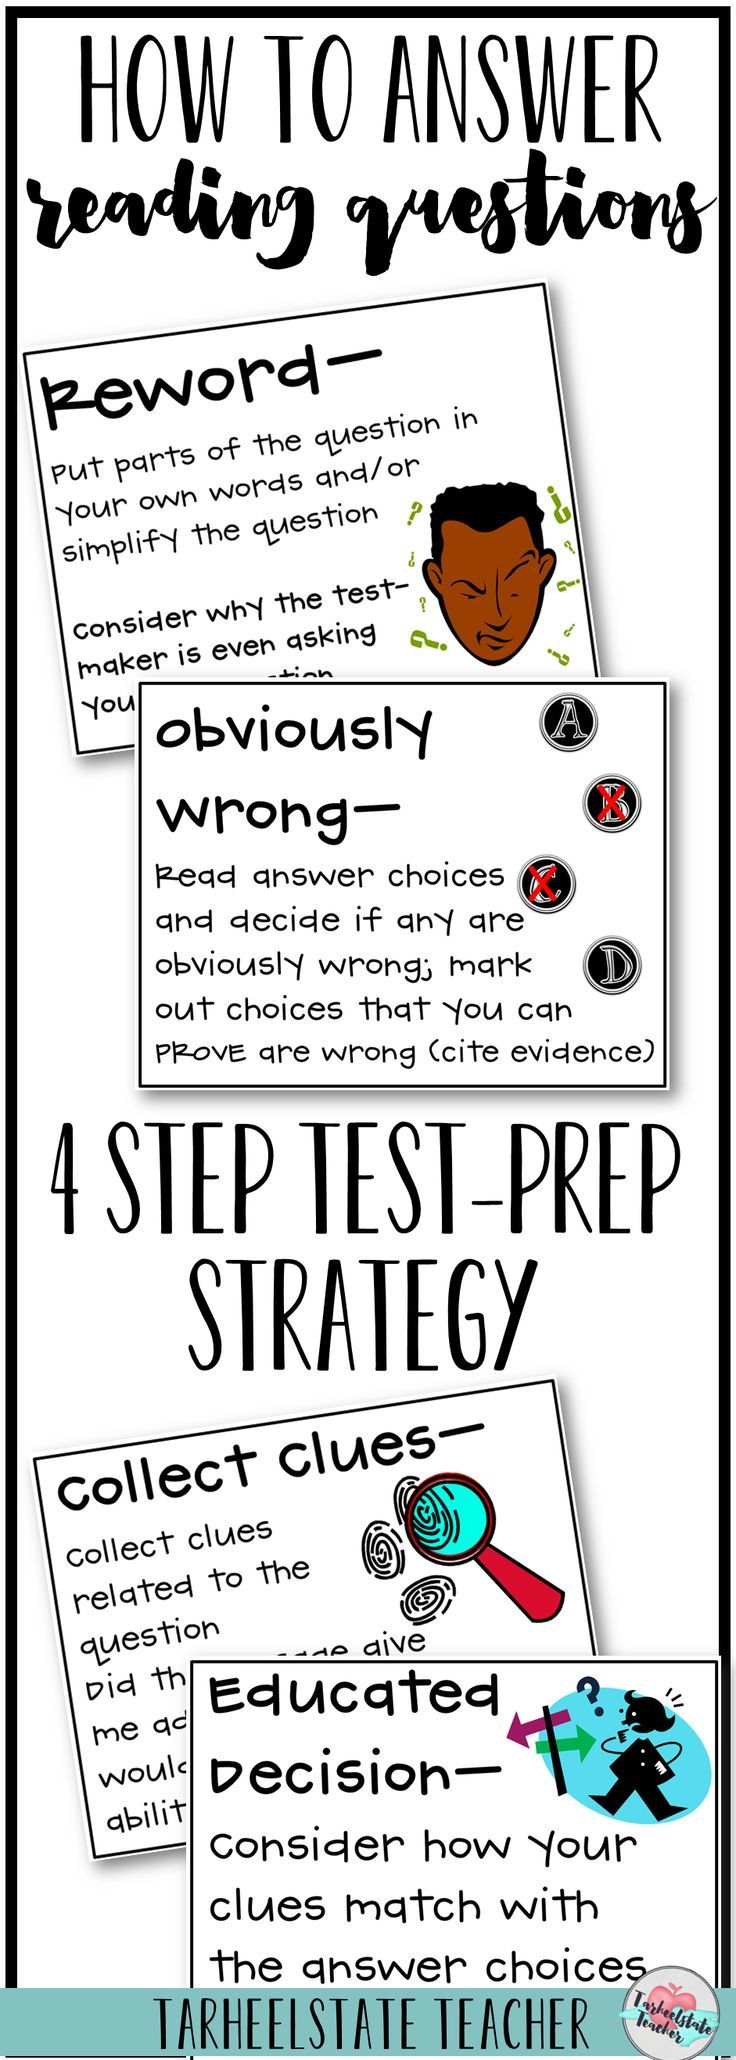 "Teach your students this 4 Step Reading Test Taking Strategy for answering Reading Comprehension questions; The ""Thinking Through Reading Tests"" resource also includes reading test prep strategies and a test talk minilesson structure for helping your students understand the design of their standardized reading tests. You'll want to include this unit into your reading test review plans."